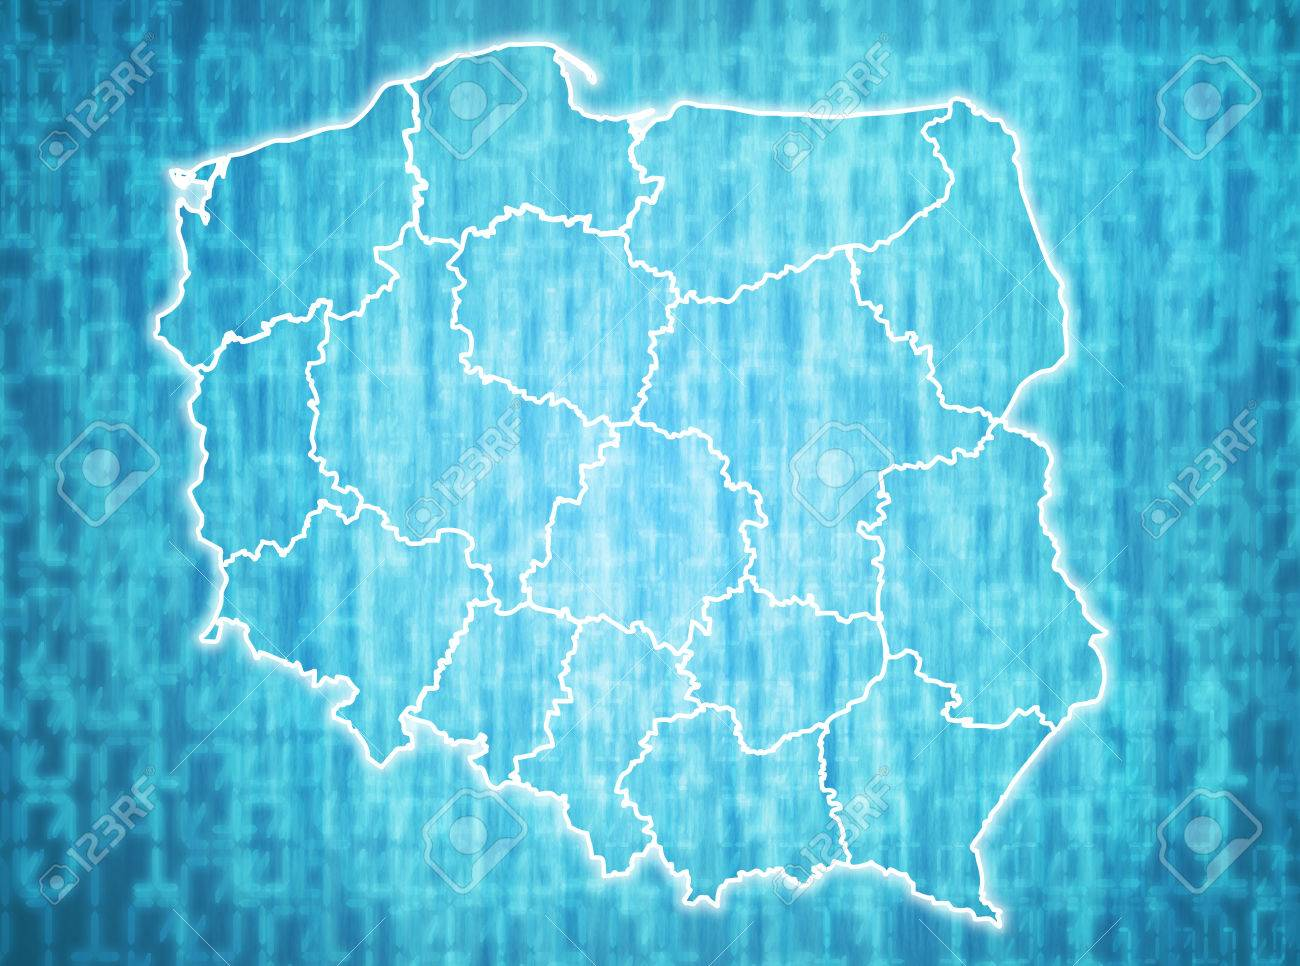 Map Of Poland With Administrative Divisions Over Digital Background